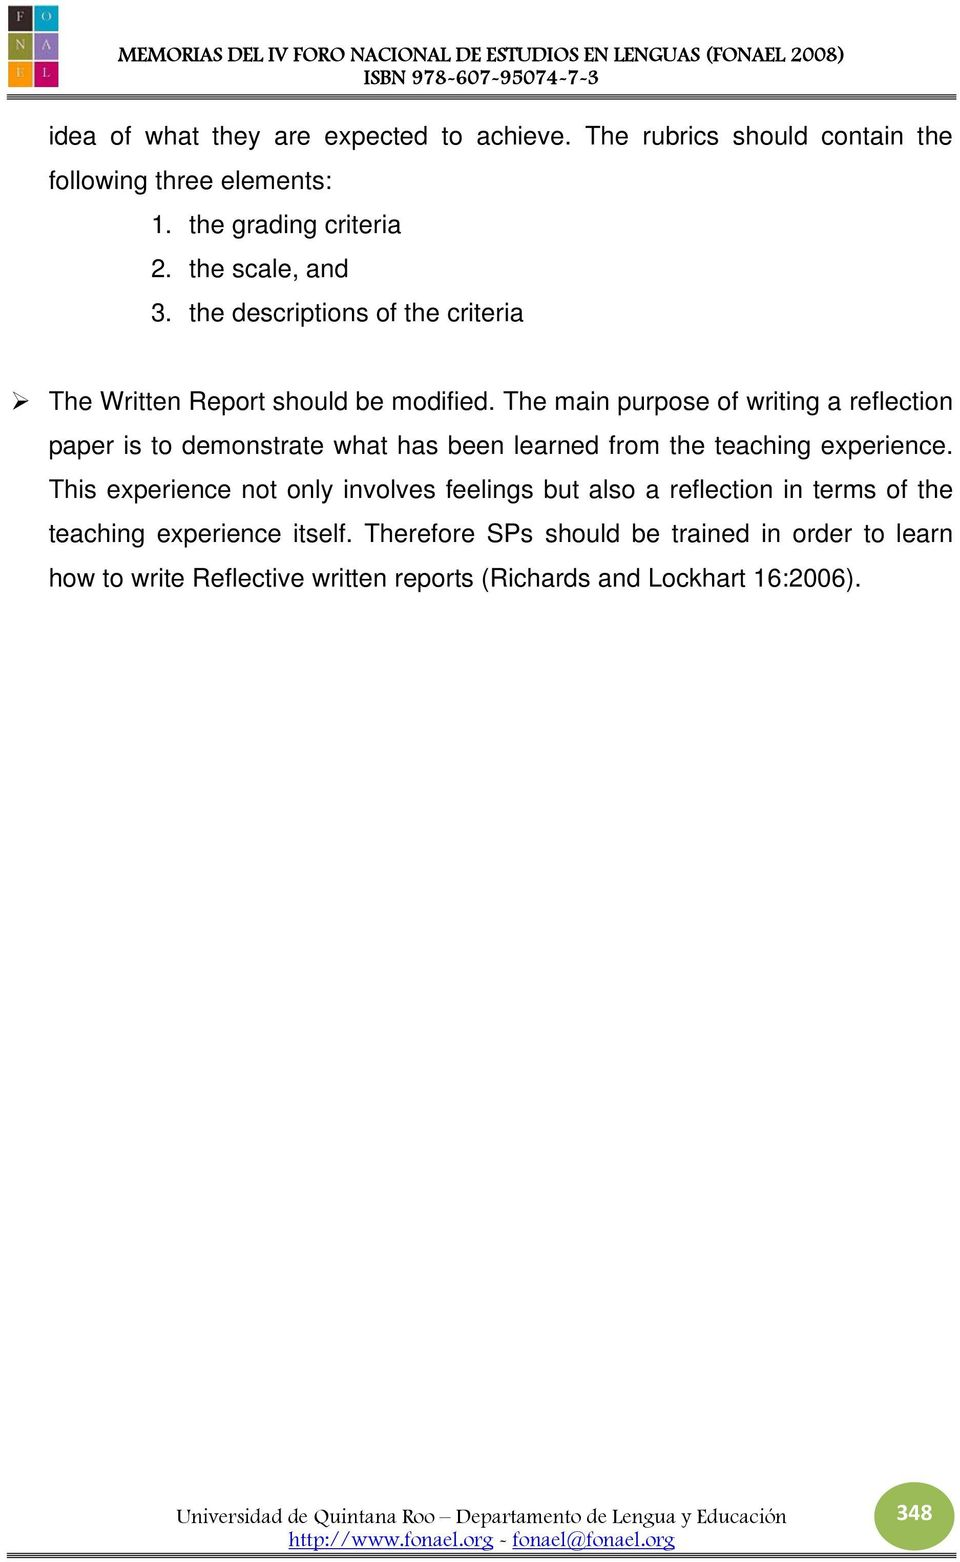 The main purpose of writing a reflection paper is to demonstrate what has been learned from the teaching experience.